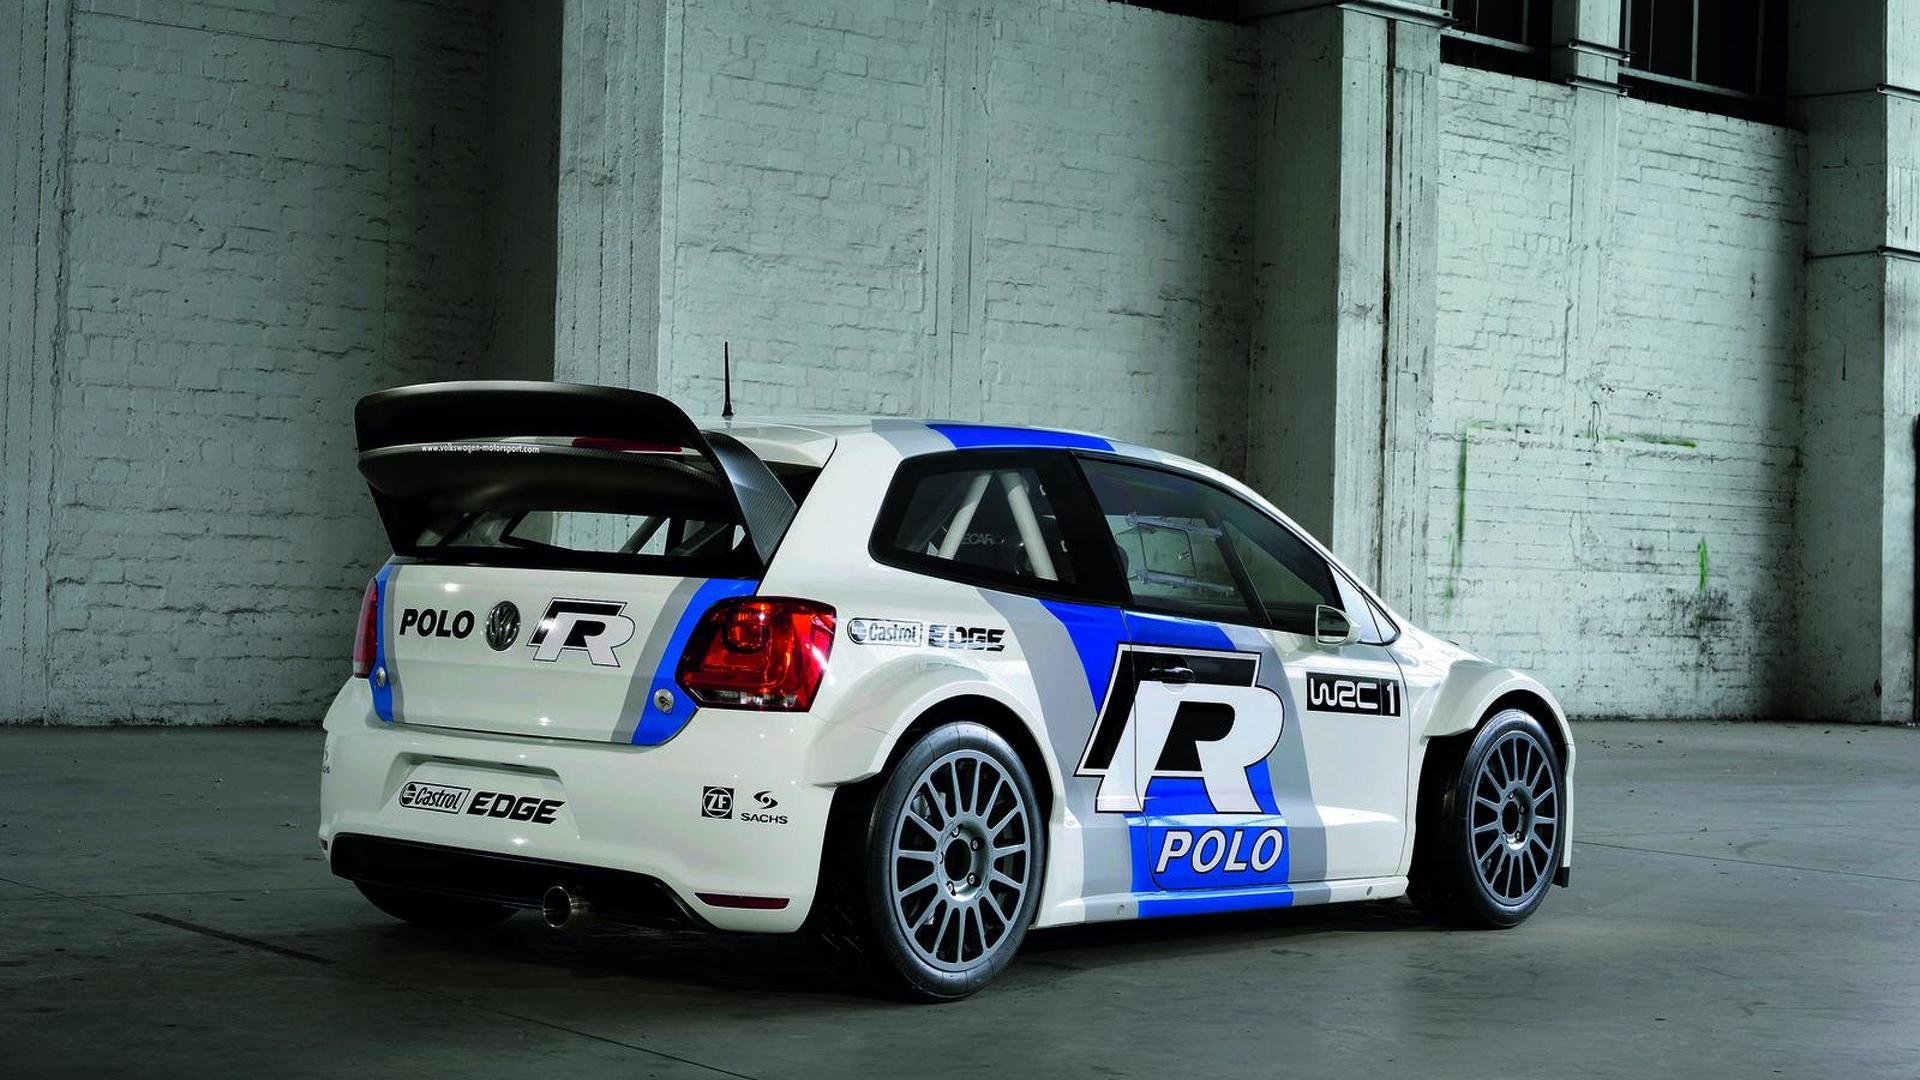 vw polo r wrc street and race versions revealed. Black Bedroom Furniture Sets. Home Design Ideas